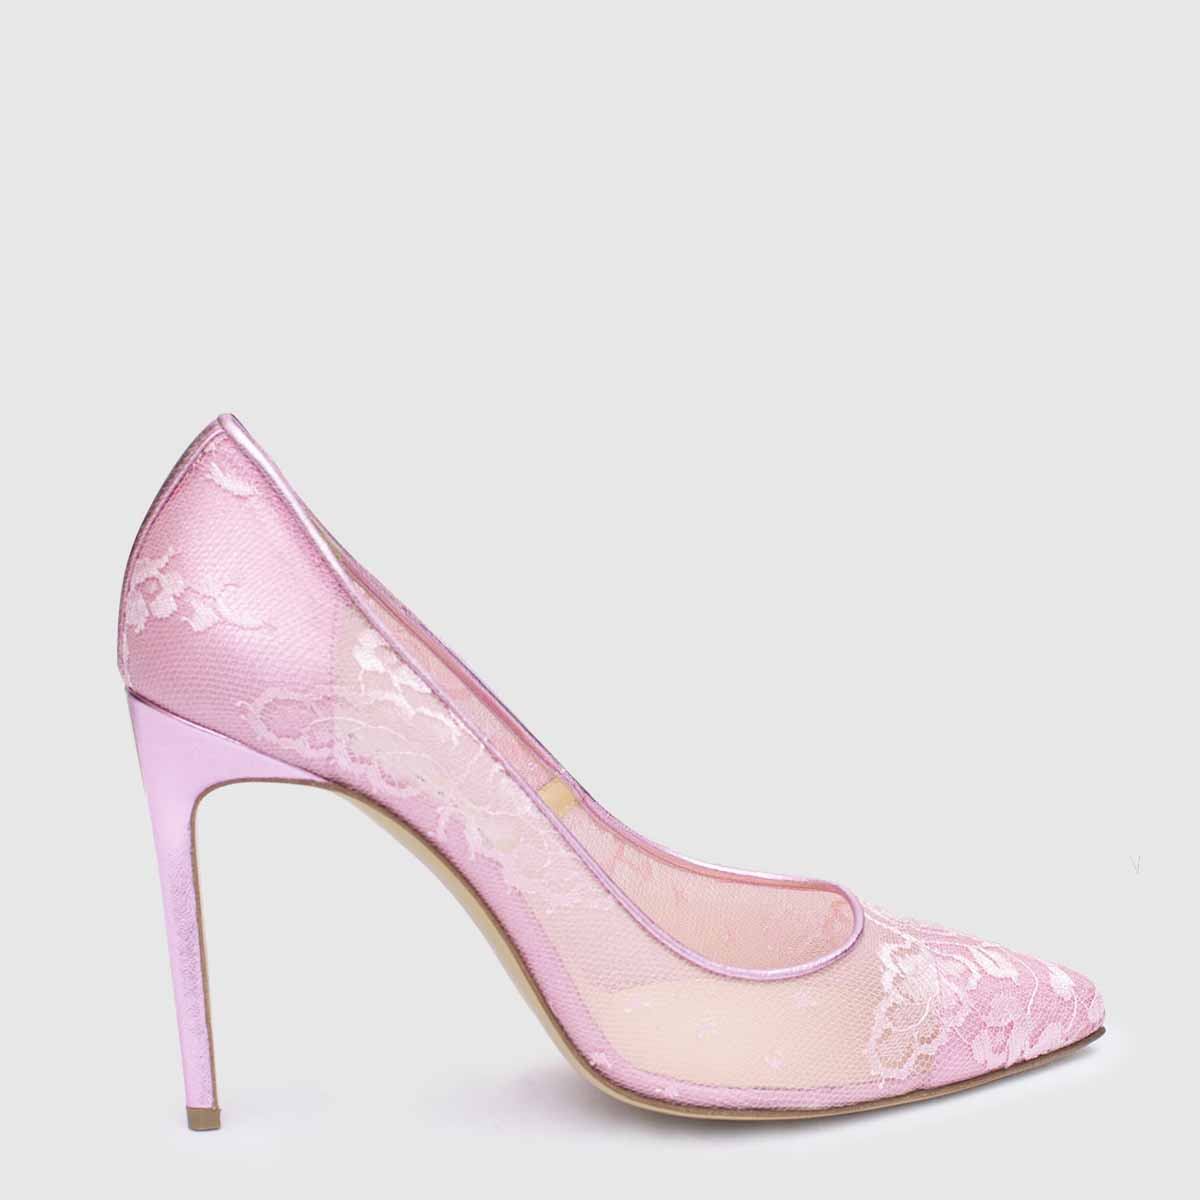 Pink leather and lace Décolleté shoe